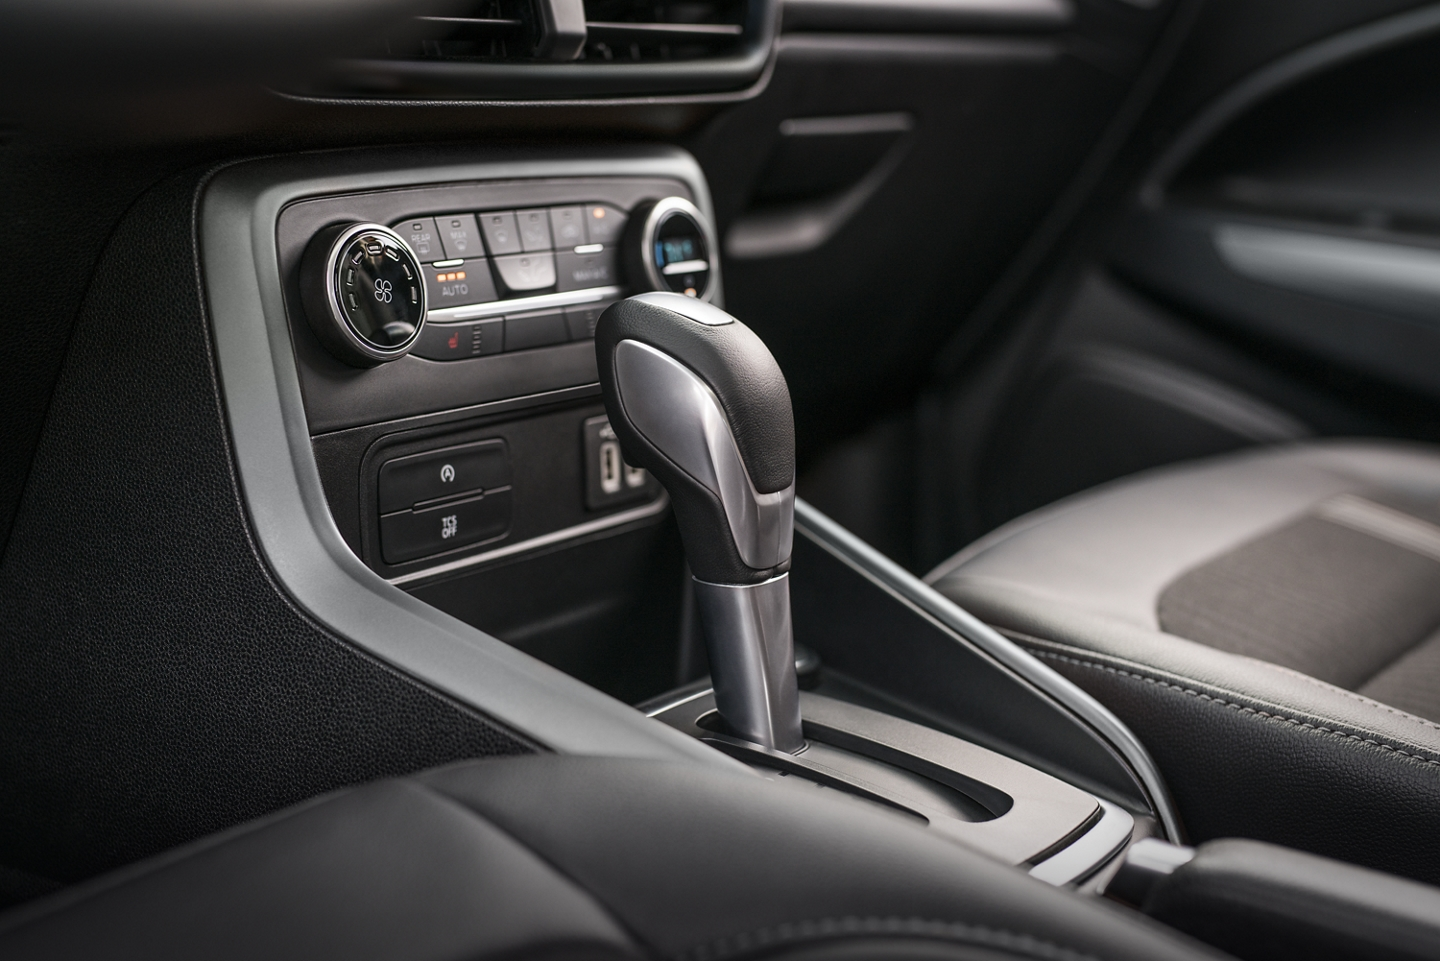 Controls in the 2020 EcoSport